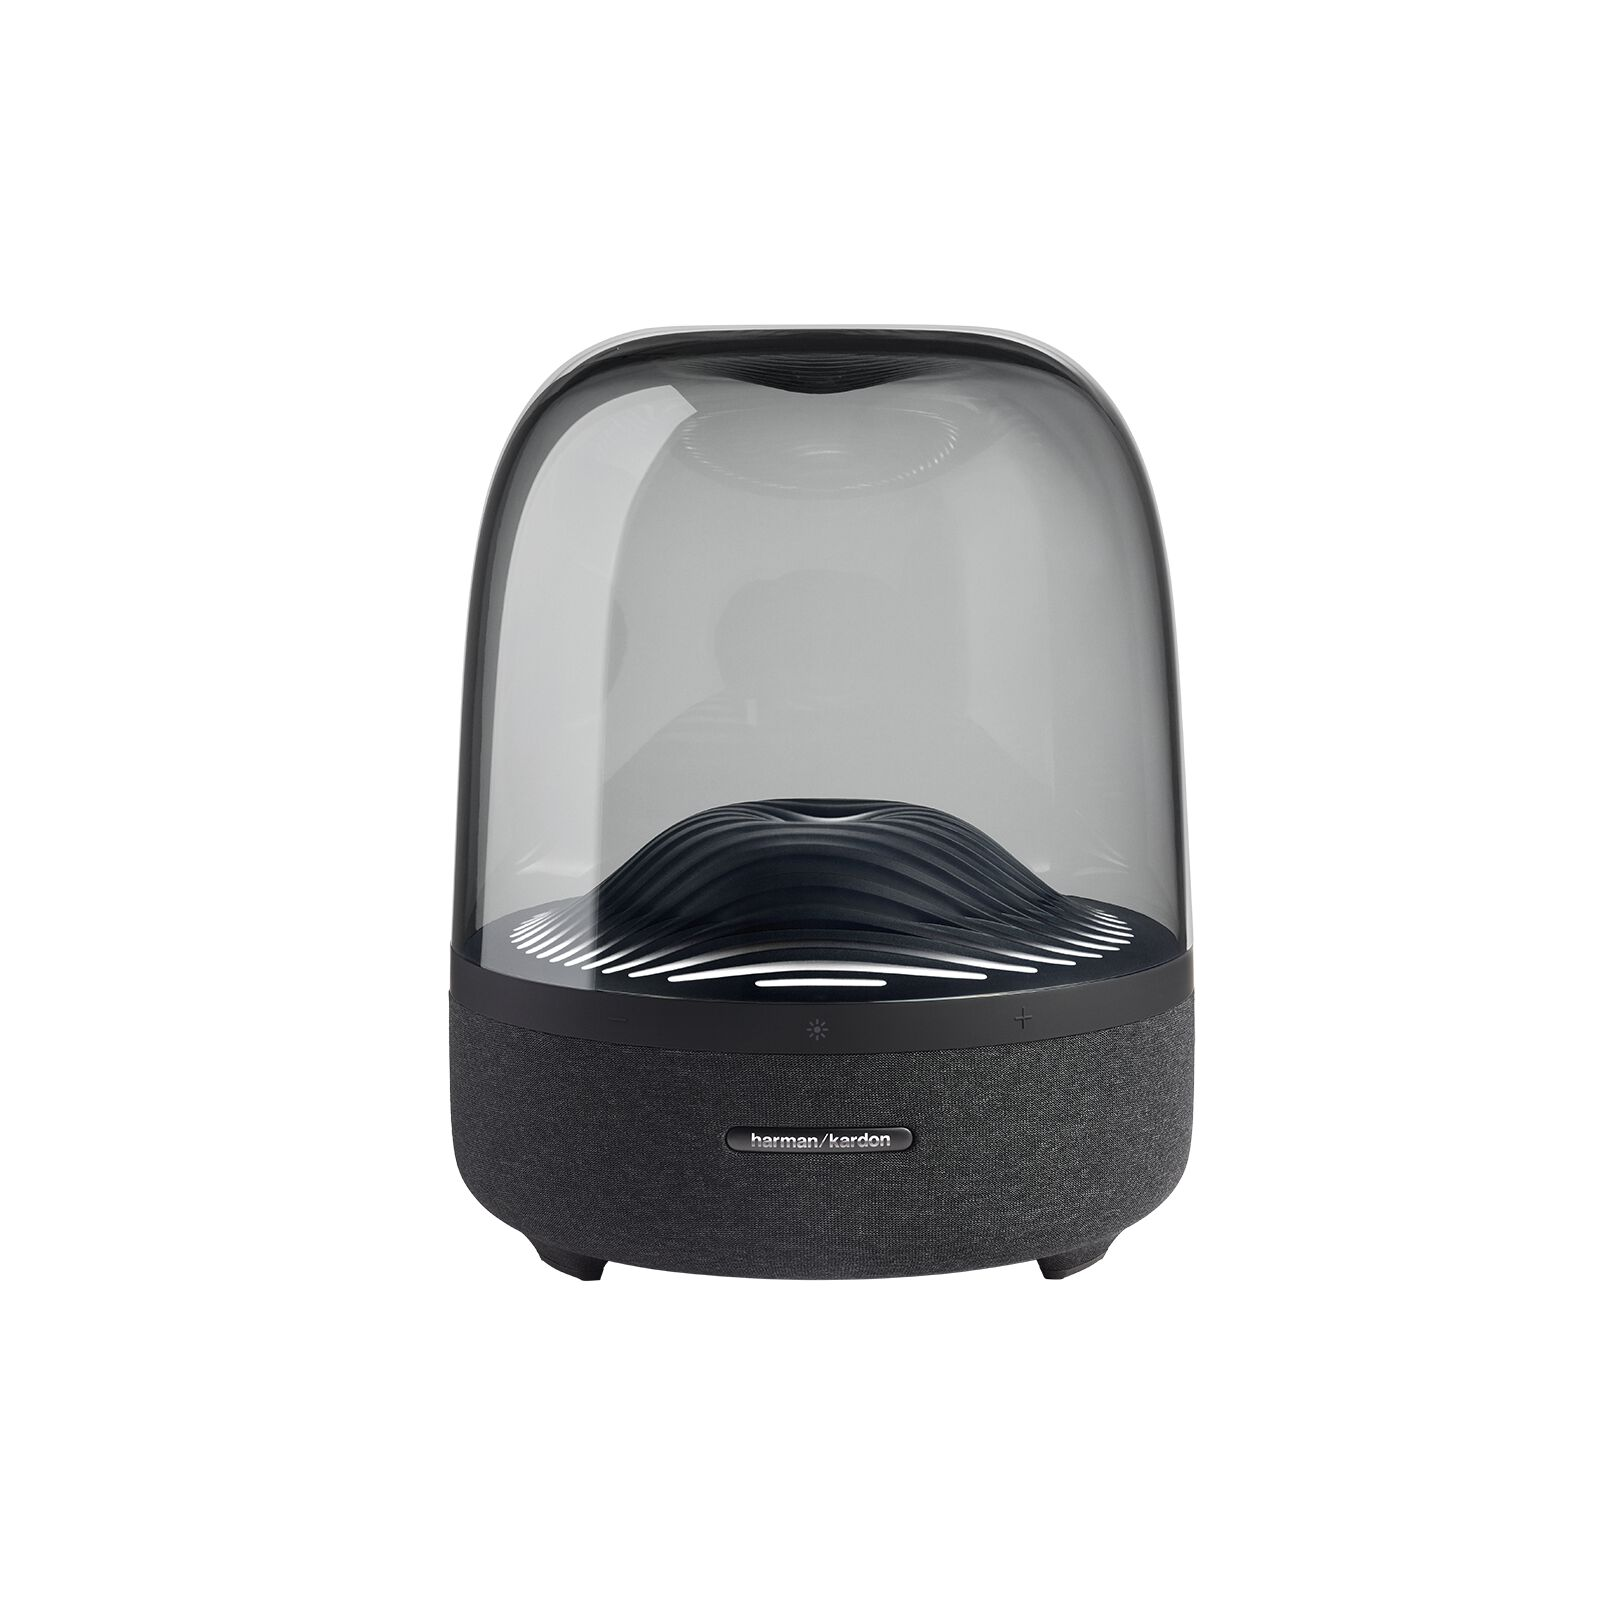 Harman Kardon Aura Studio 3 Black Draadloze speaker